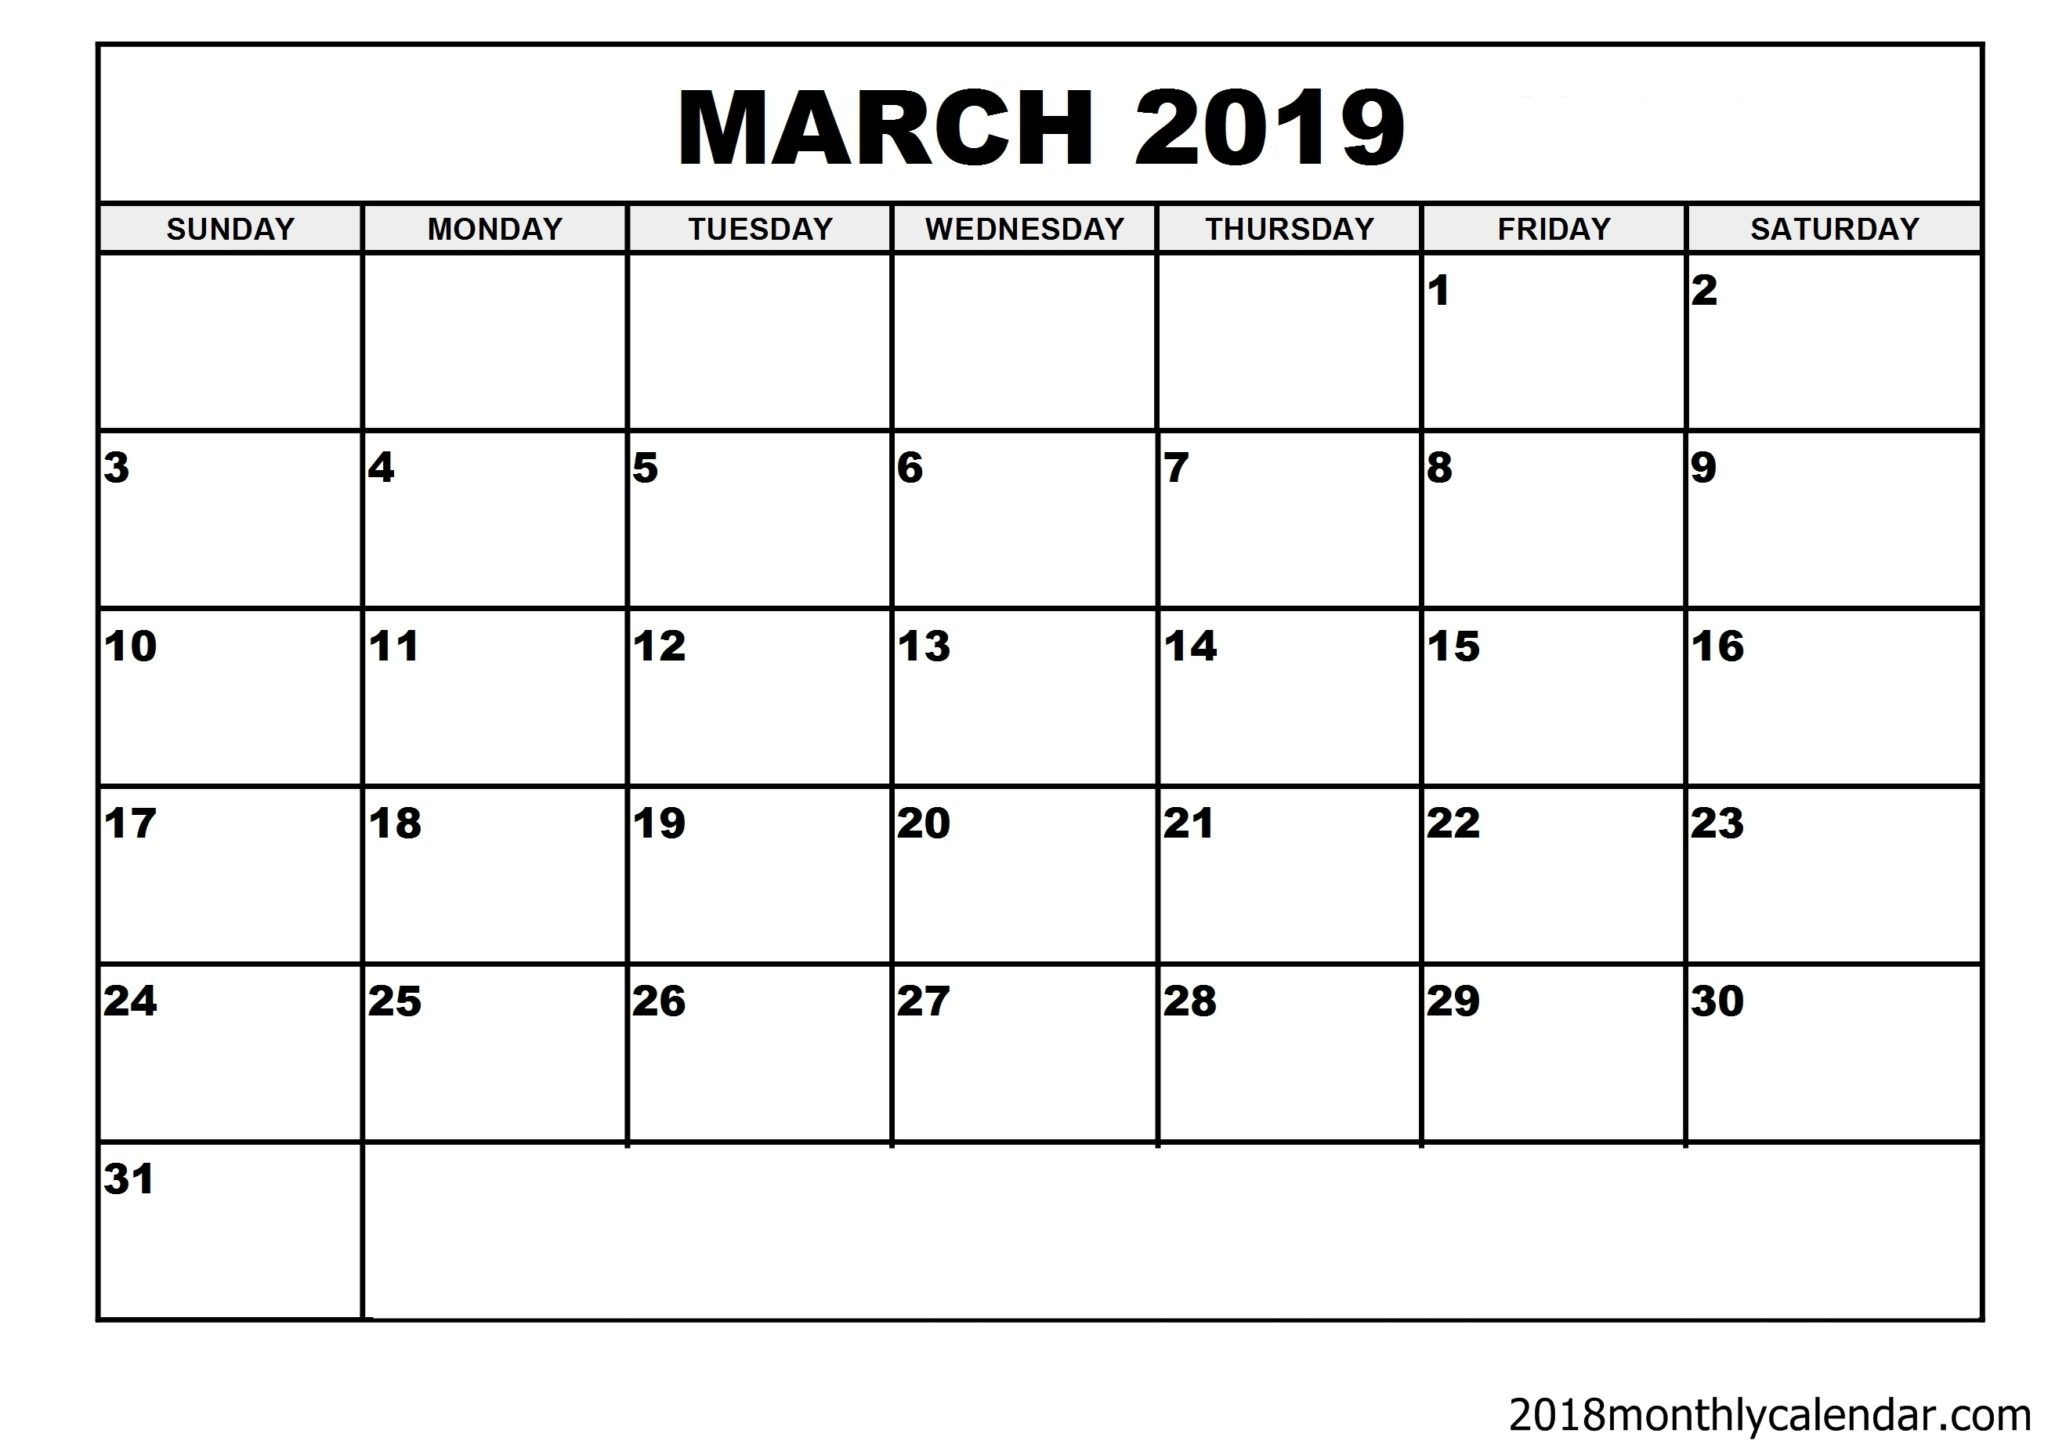 Download March 2019 Calendar – Blank Template - Editable Calendar regarding Monthly Calendar Templates Portrait Editable